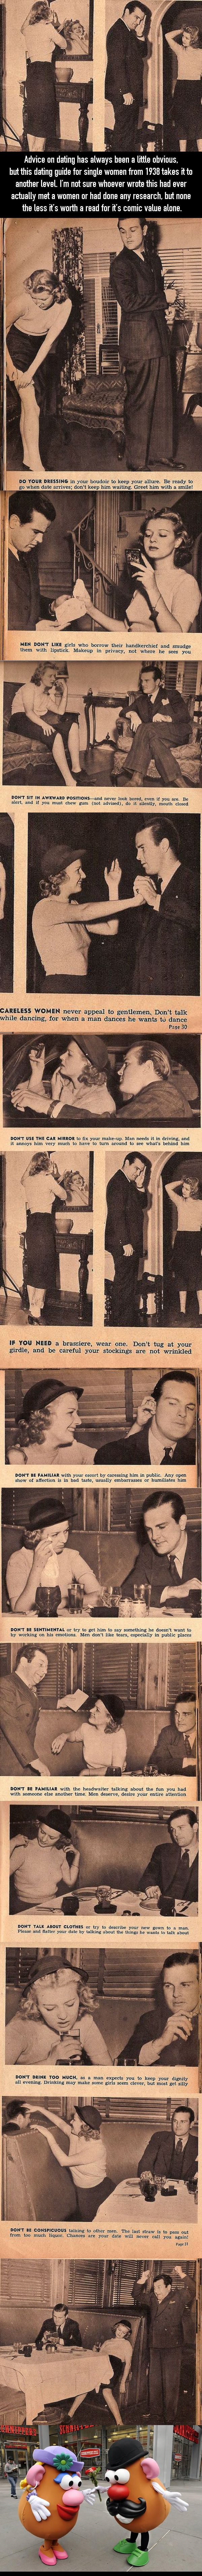 The 1930's was a rough time to be a lady dating. Dating guides in the 1930's were… extremely questionable